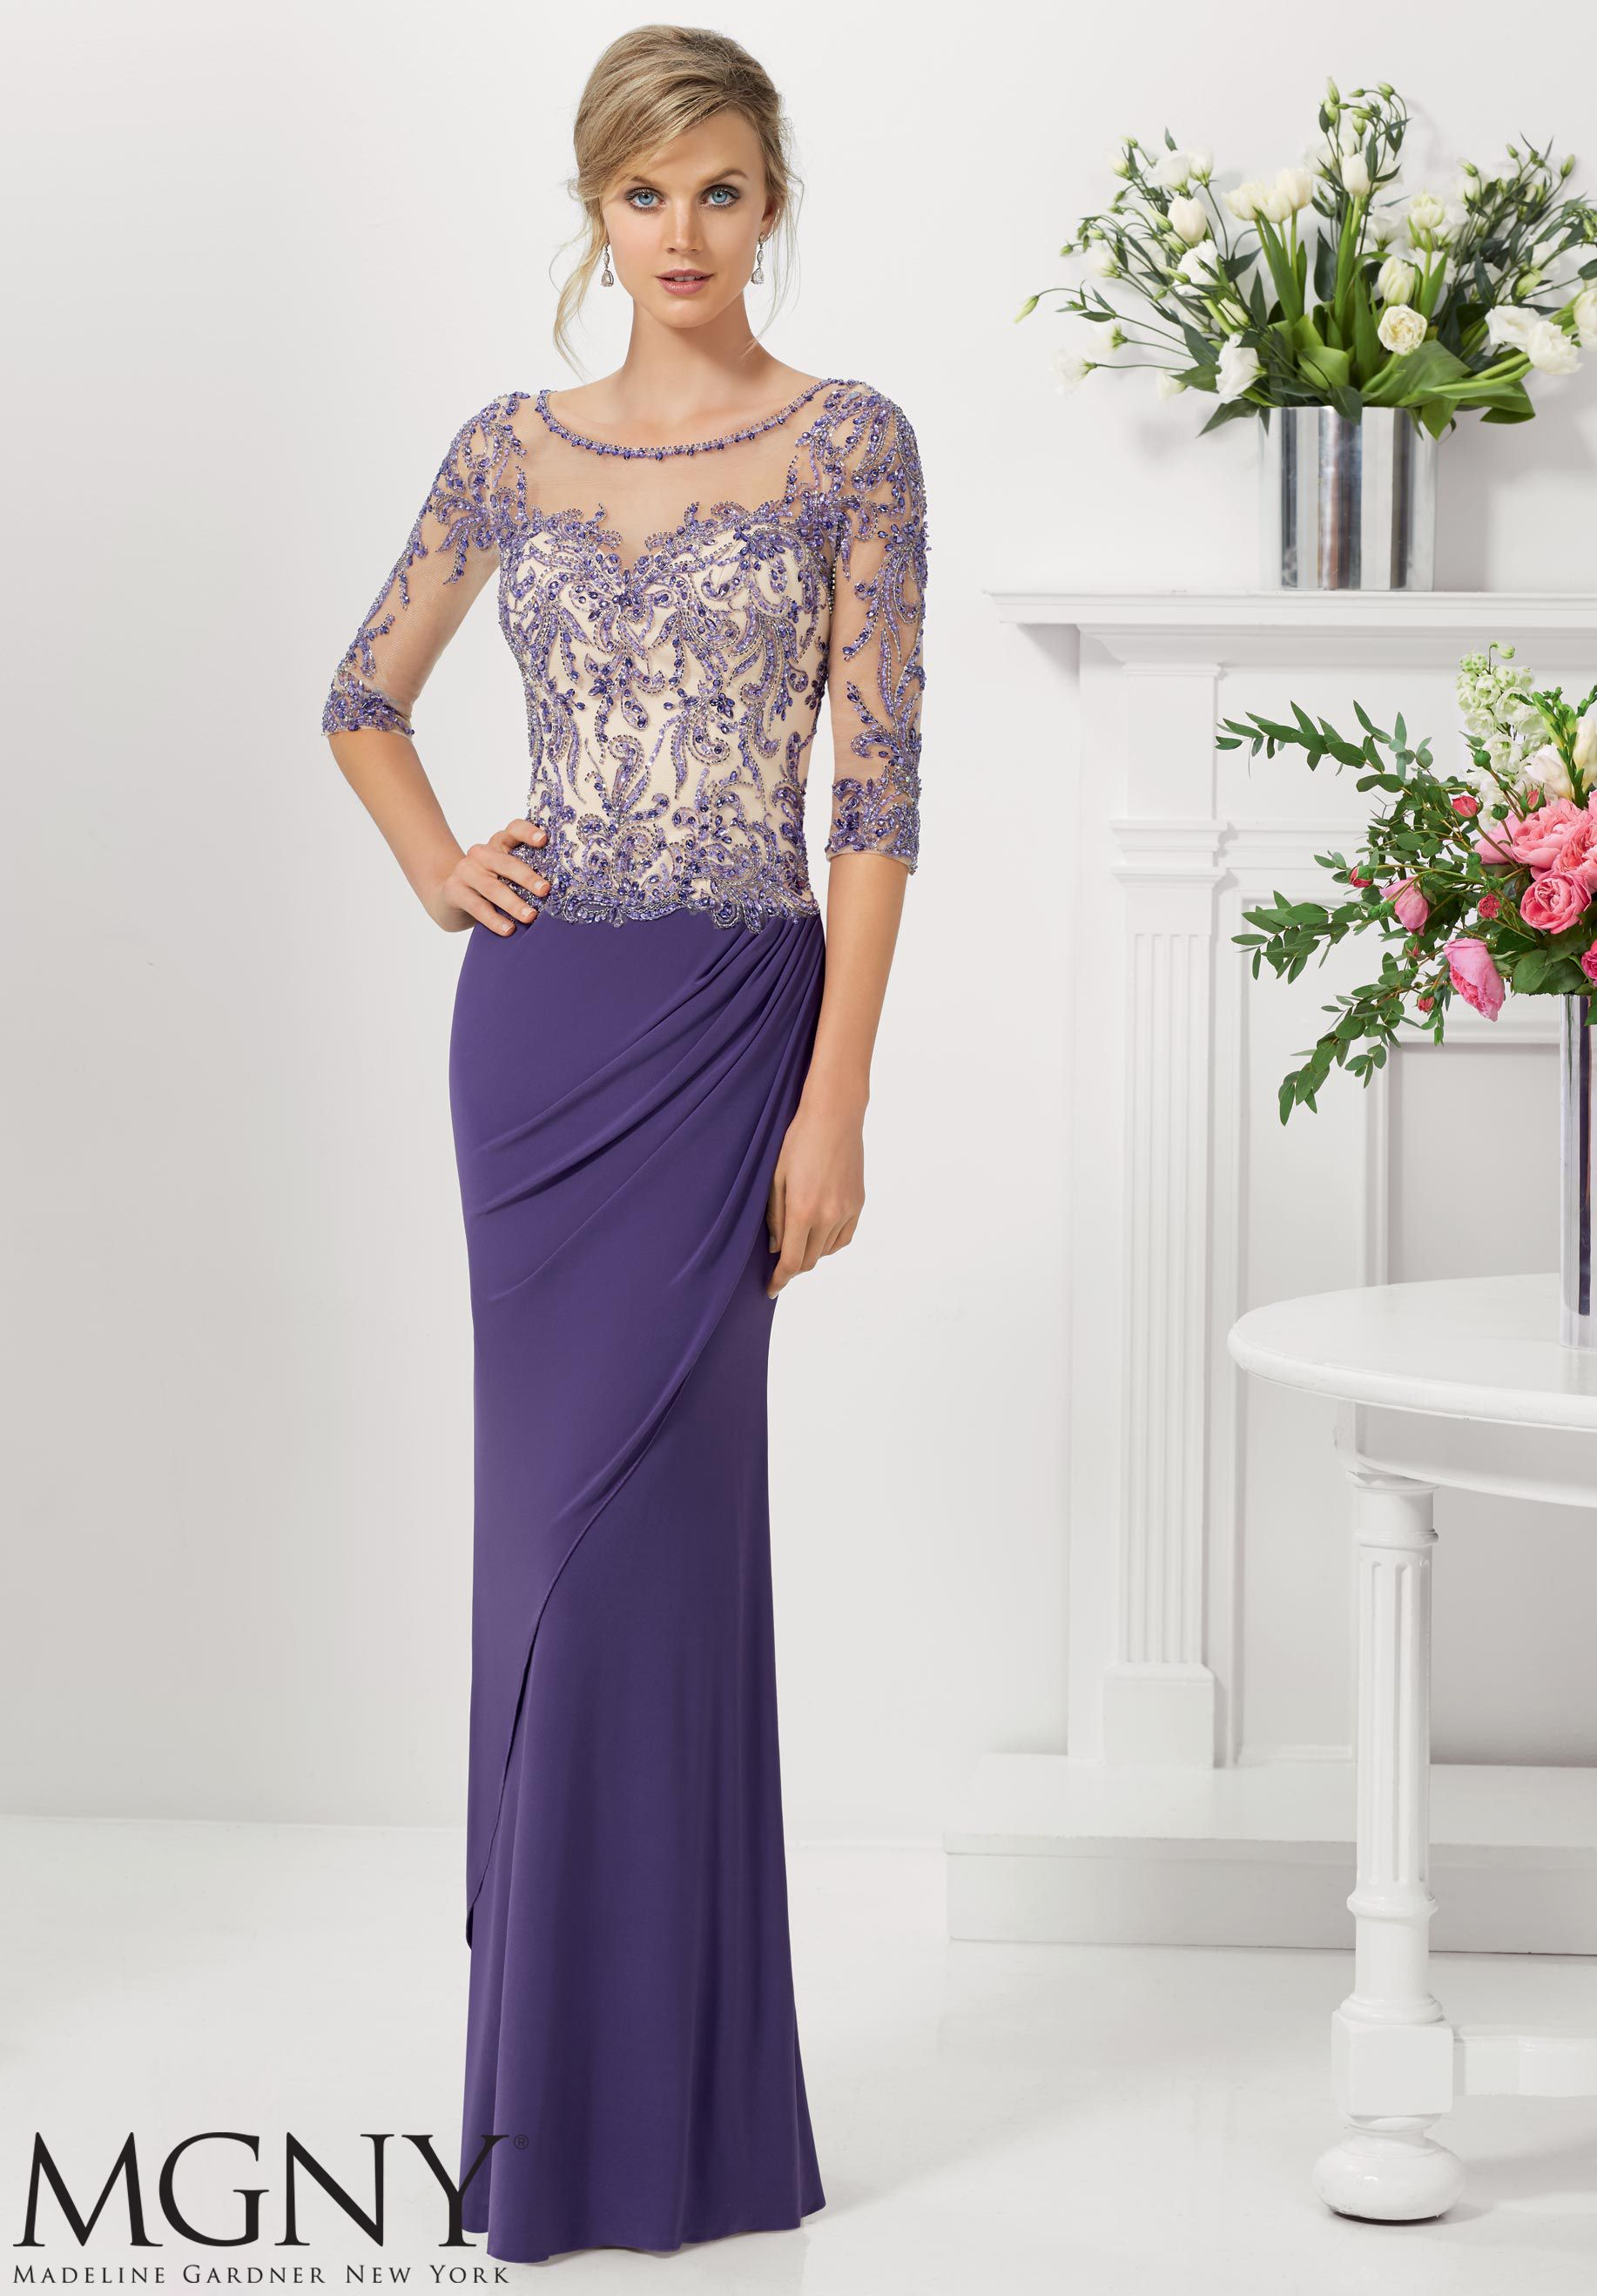 Jersey with embroidery and beading on net evening gown soft